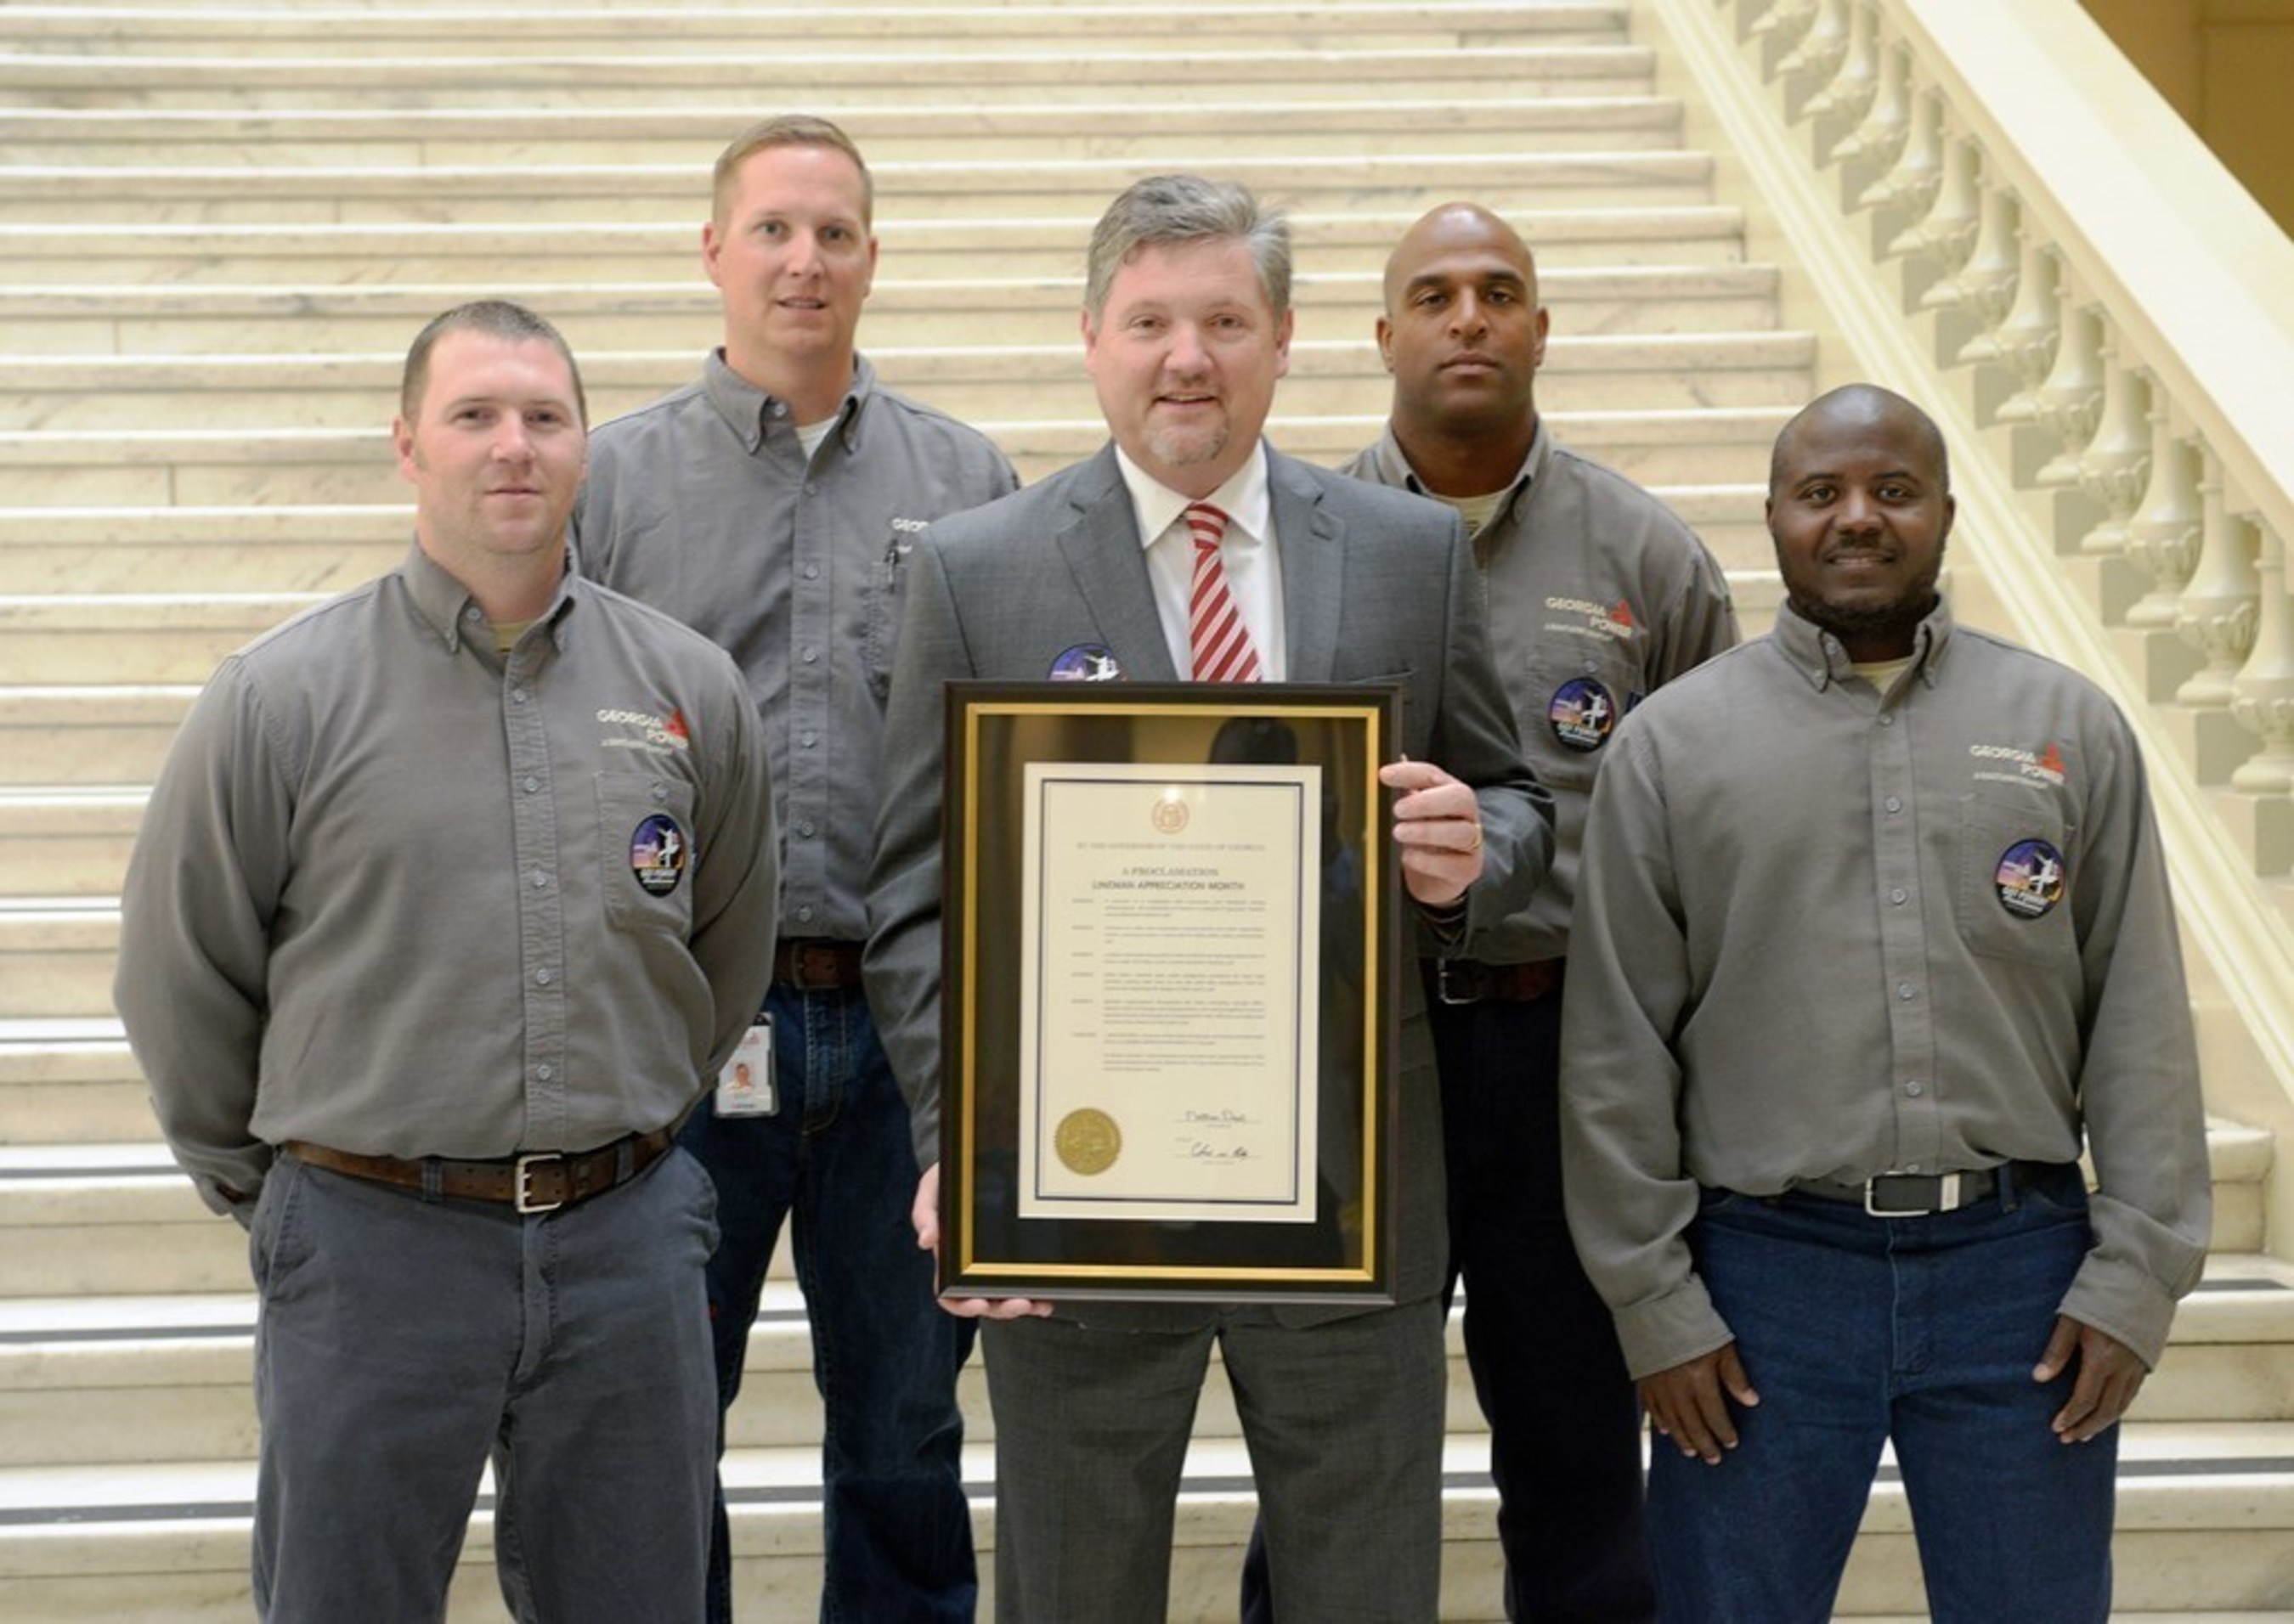 Danny Lindsey, Georgia Power Vice President of Transmission, and Georgia Power linemen during a special event at the Georgia Capitol on Tuesday, April 19.